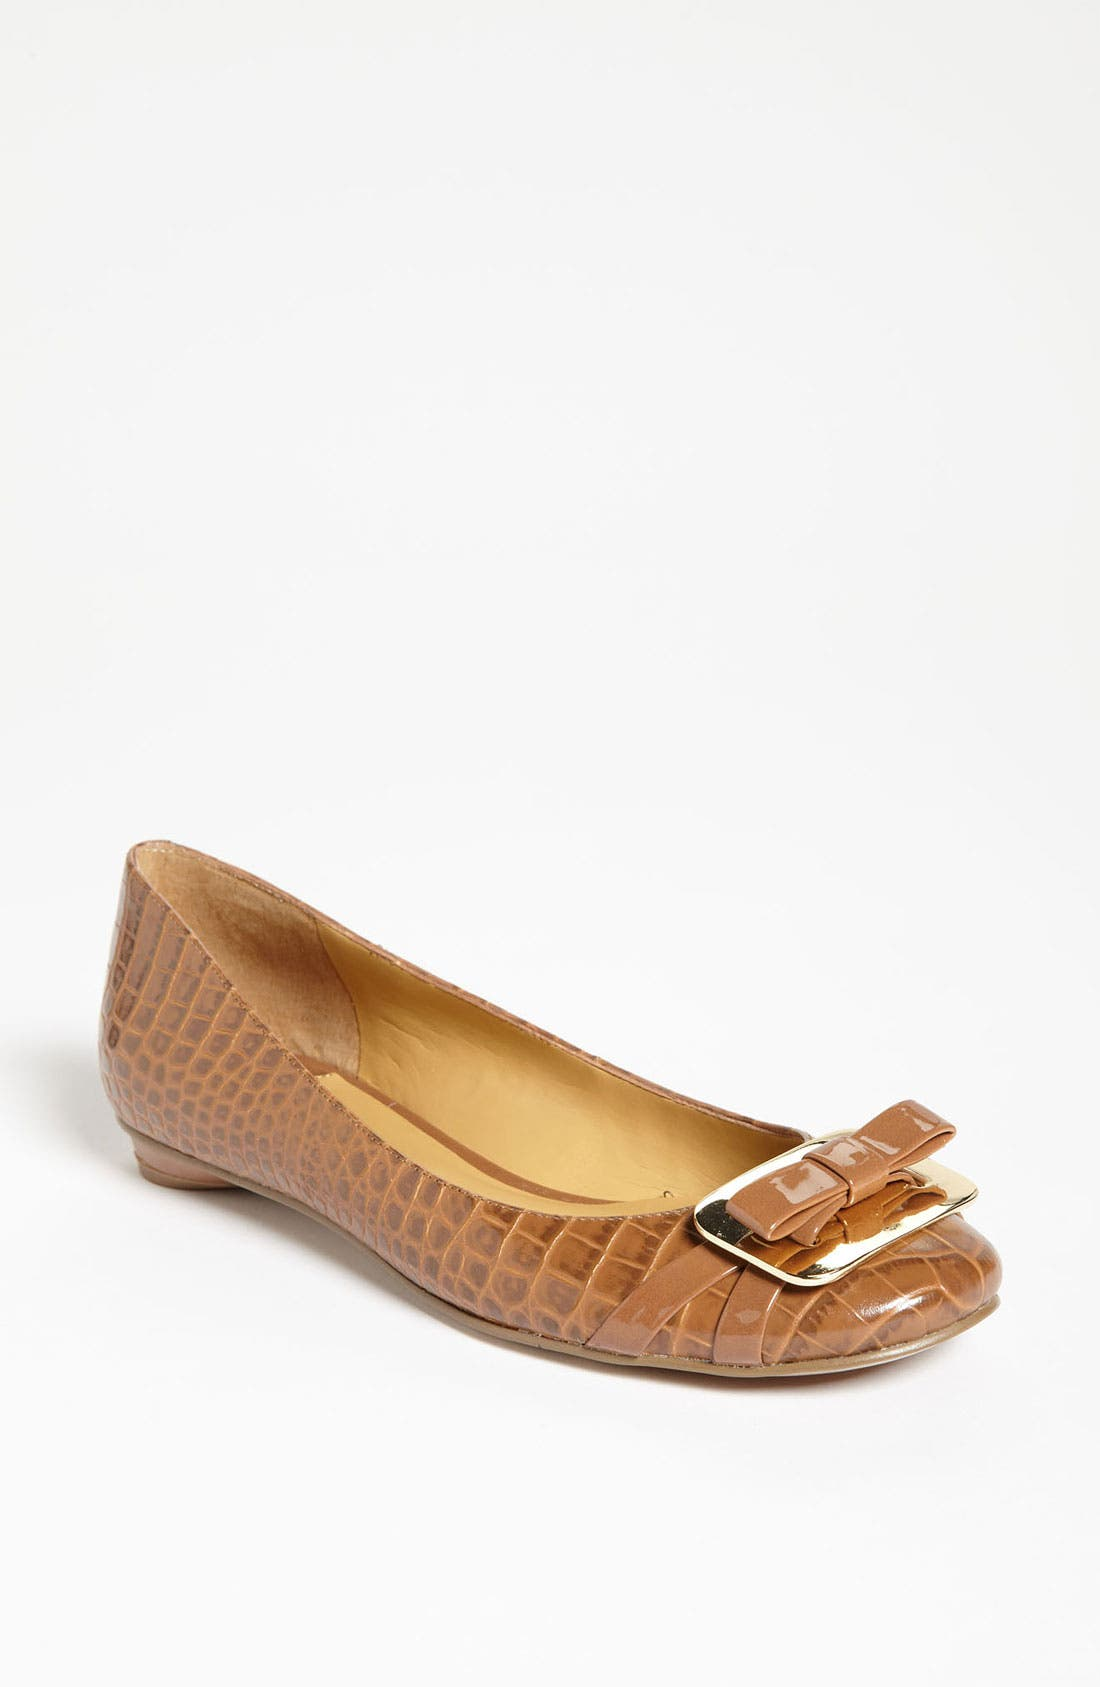 Alternate Image 1 Selected - Nine West 'Rueben' Flat